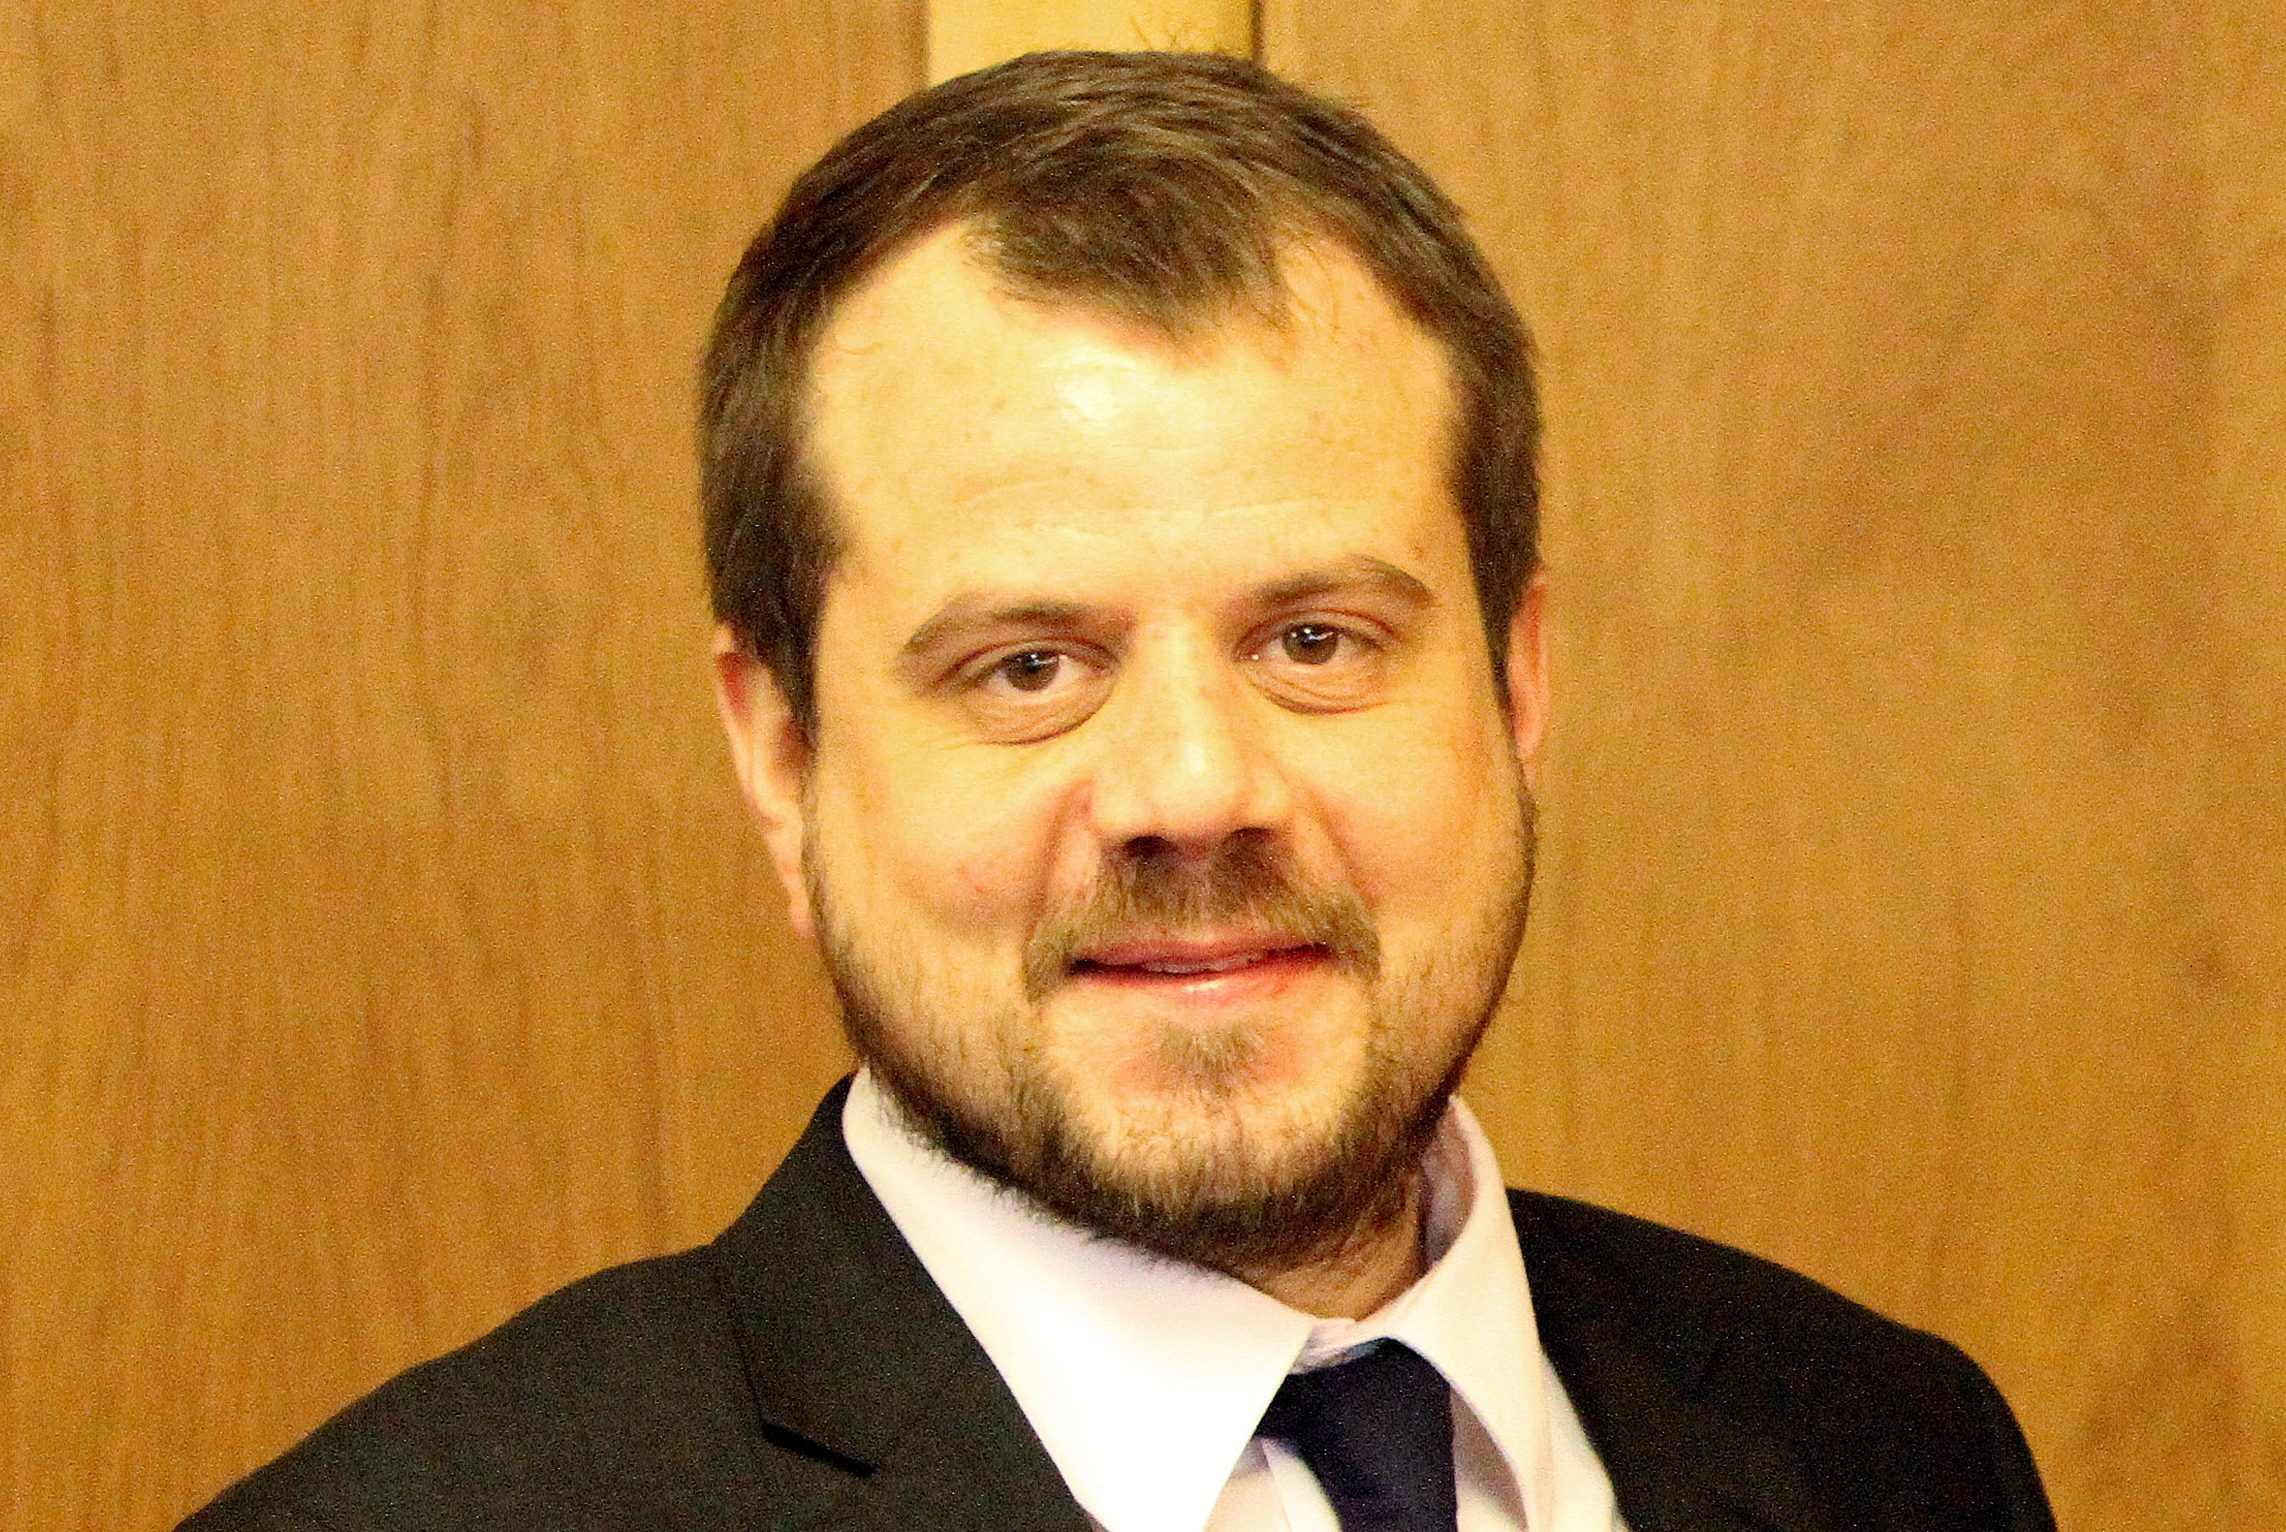 Former SNP councillor Craig Melville, who has been found guilty of racist abuse.